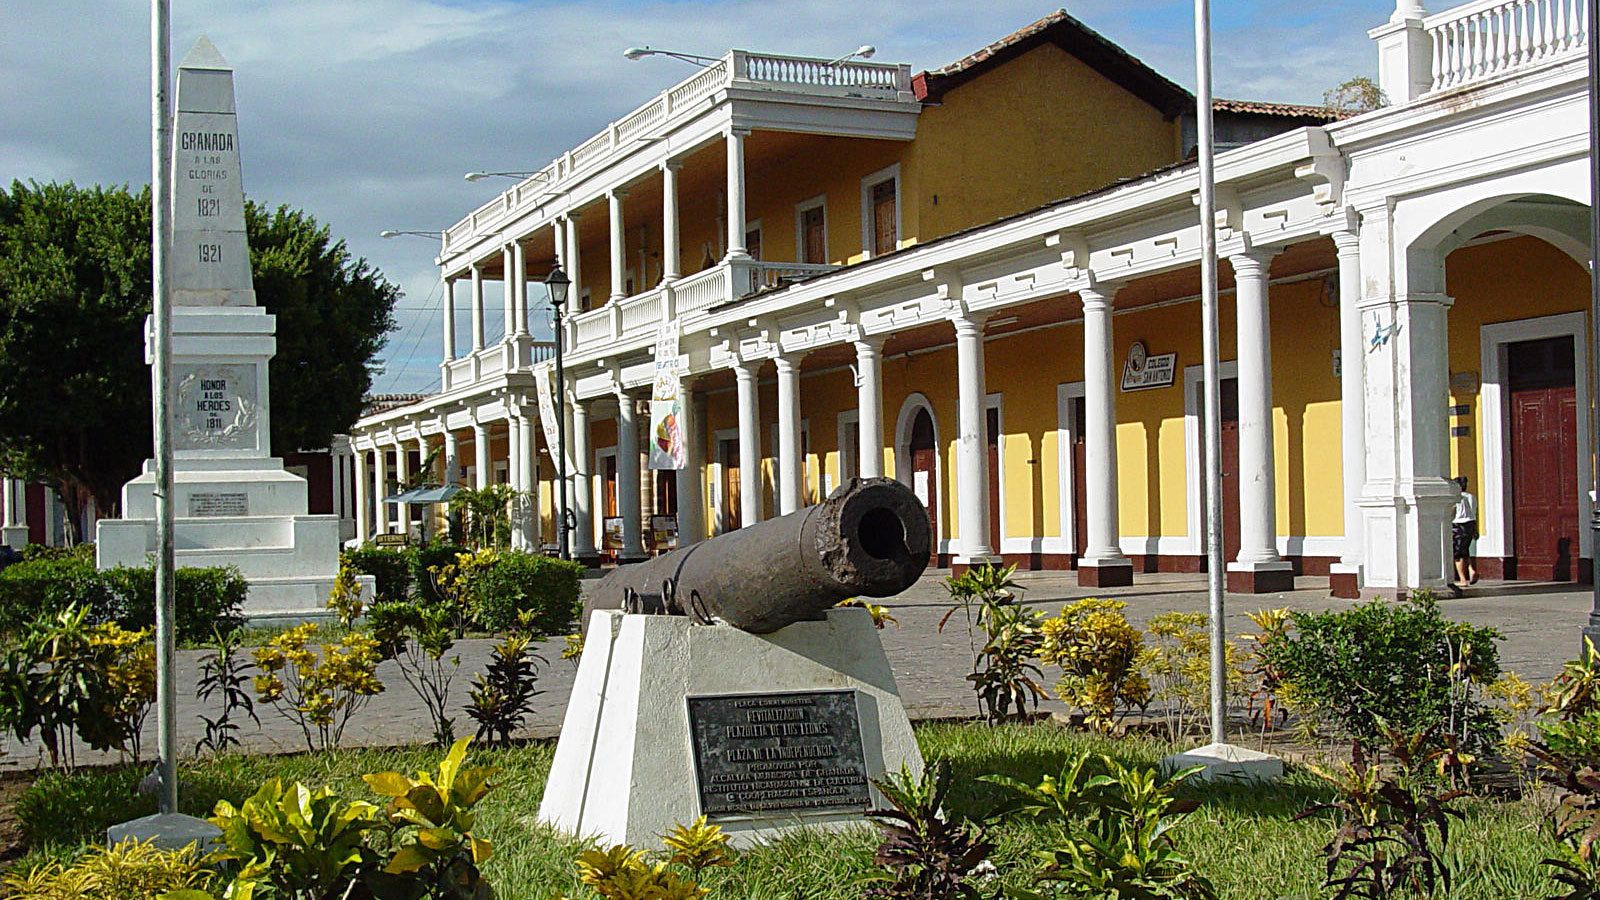 Colorful buildings at a historical site in Nicaragua